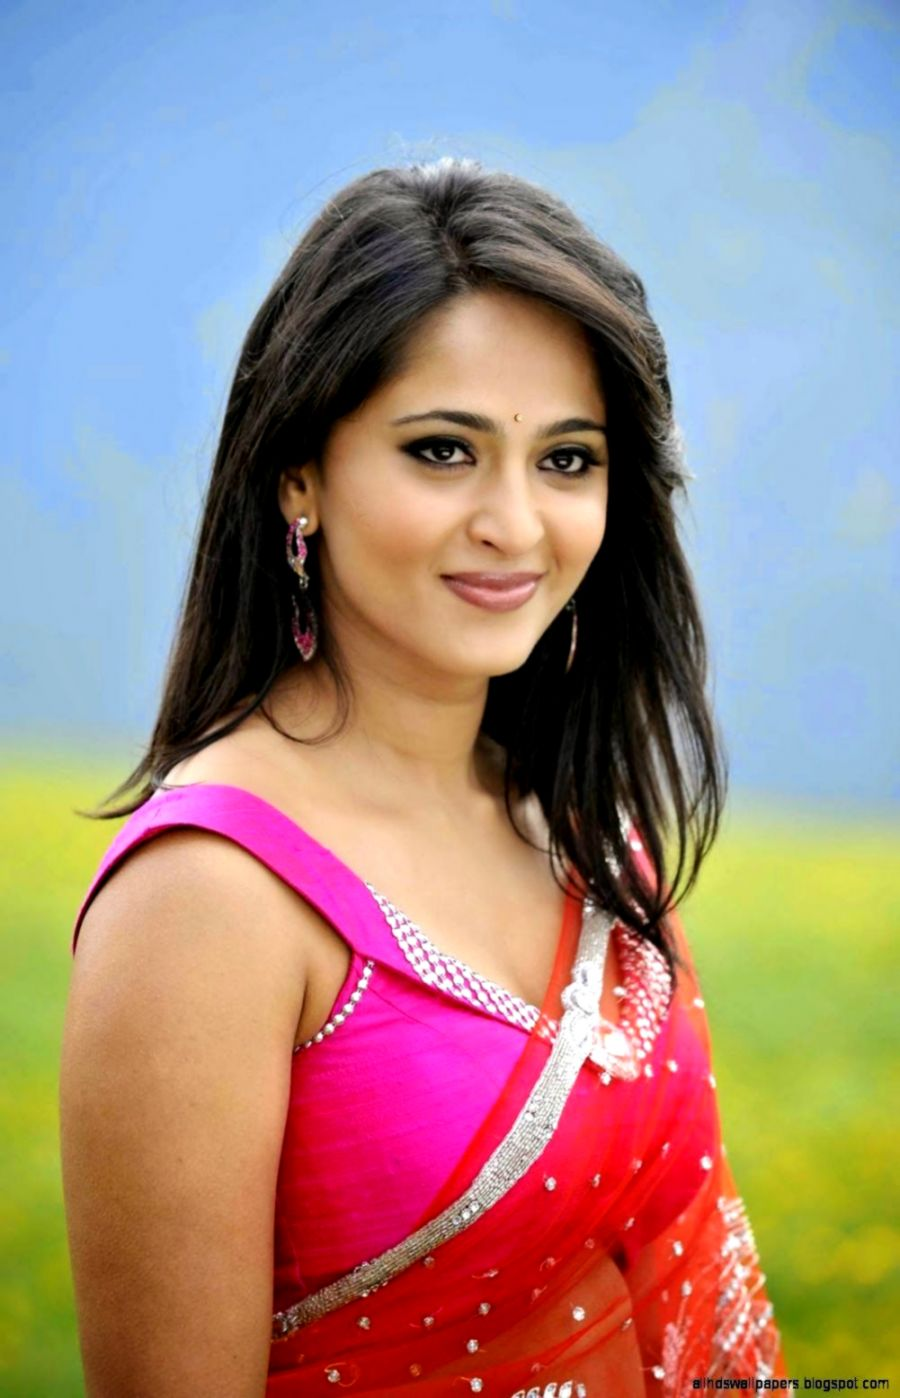 Hd Wallpapers Indian Girls All ...